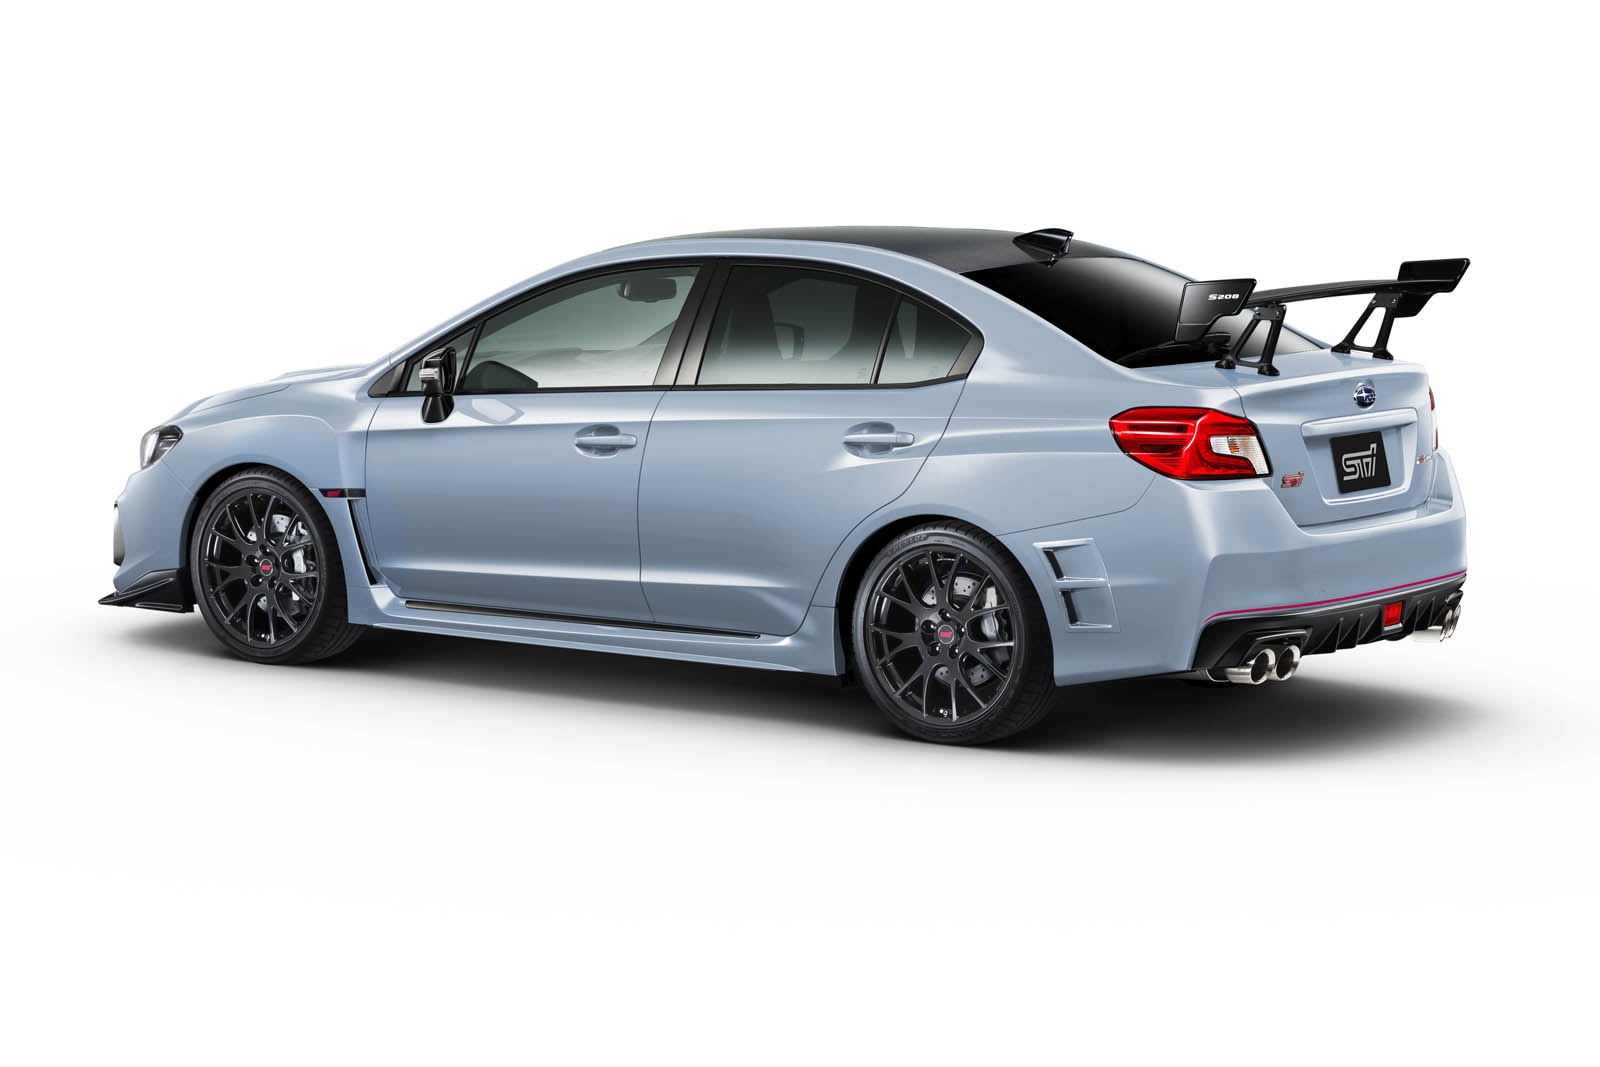 subaru wrx sti s208 is a 324 hp japanese beast carscoops. Black Bedroom Furniture Sets. Home Design Ideas